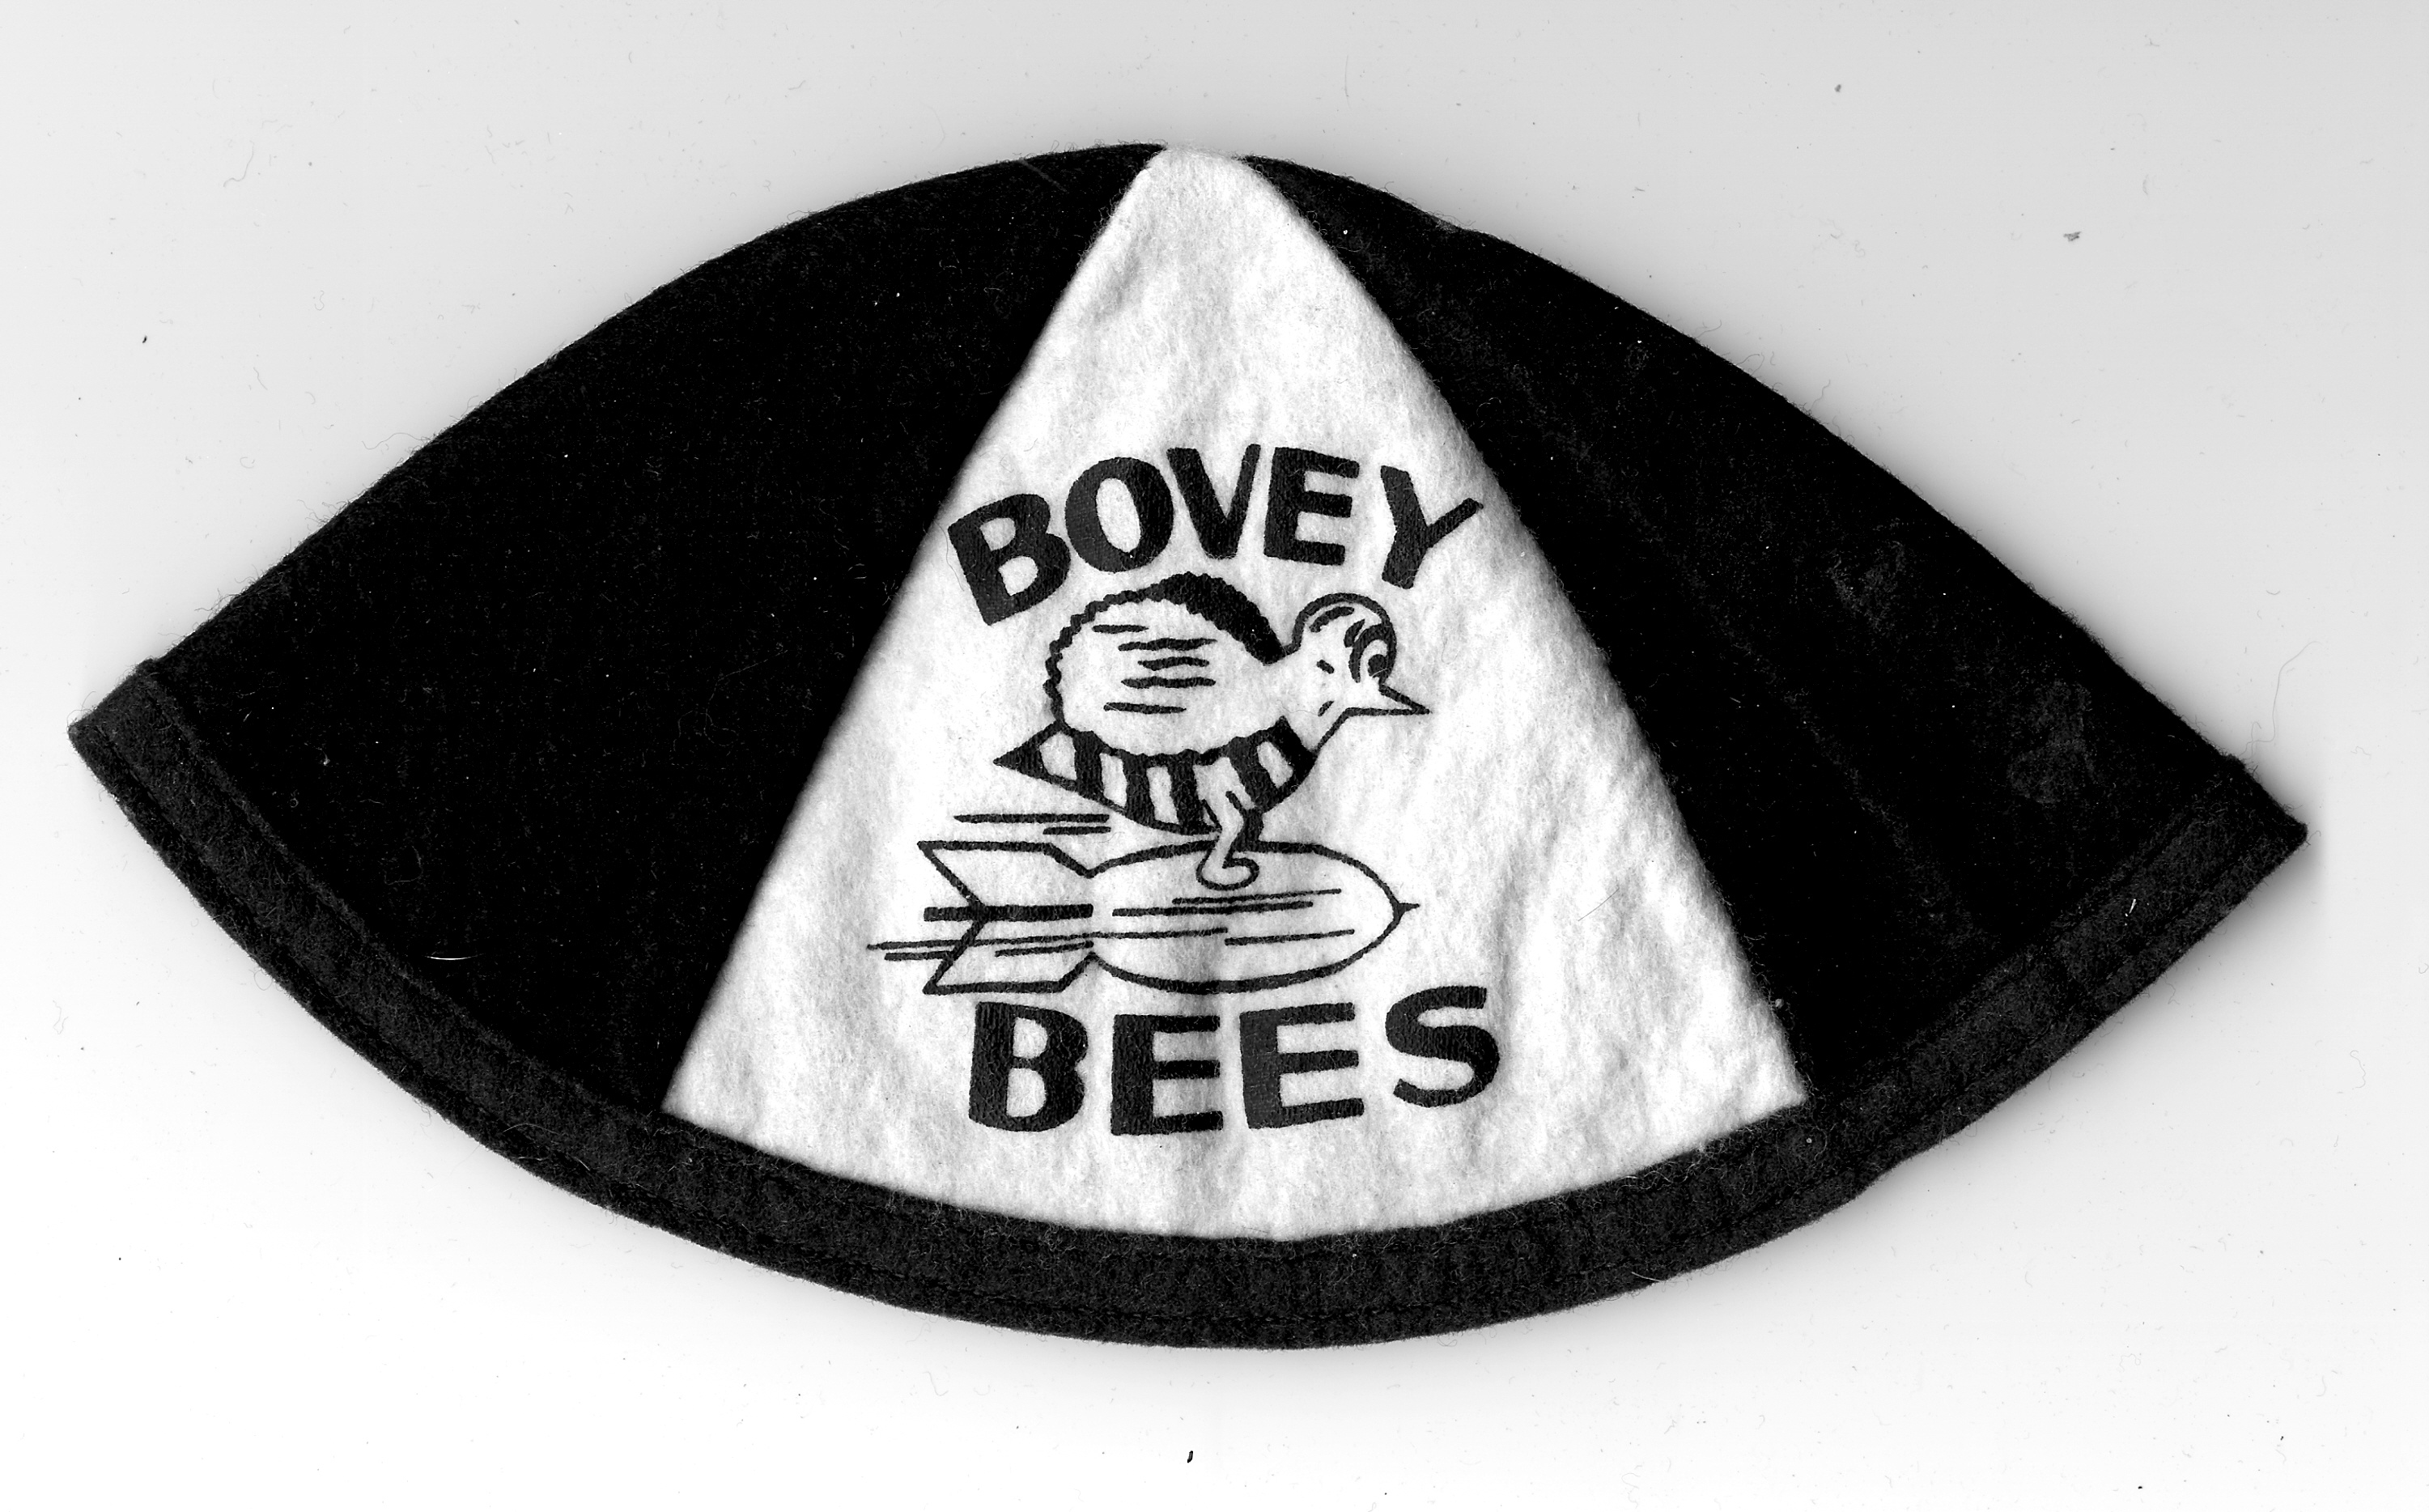 Bovey Bees